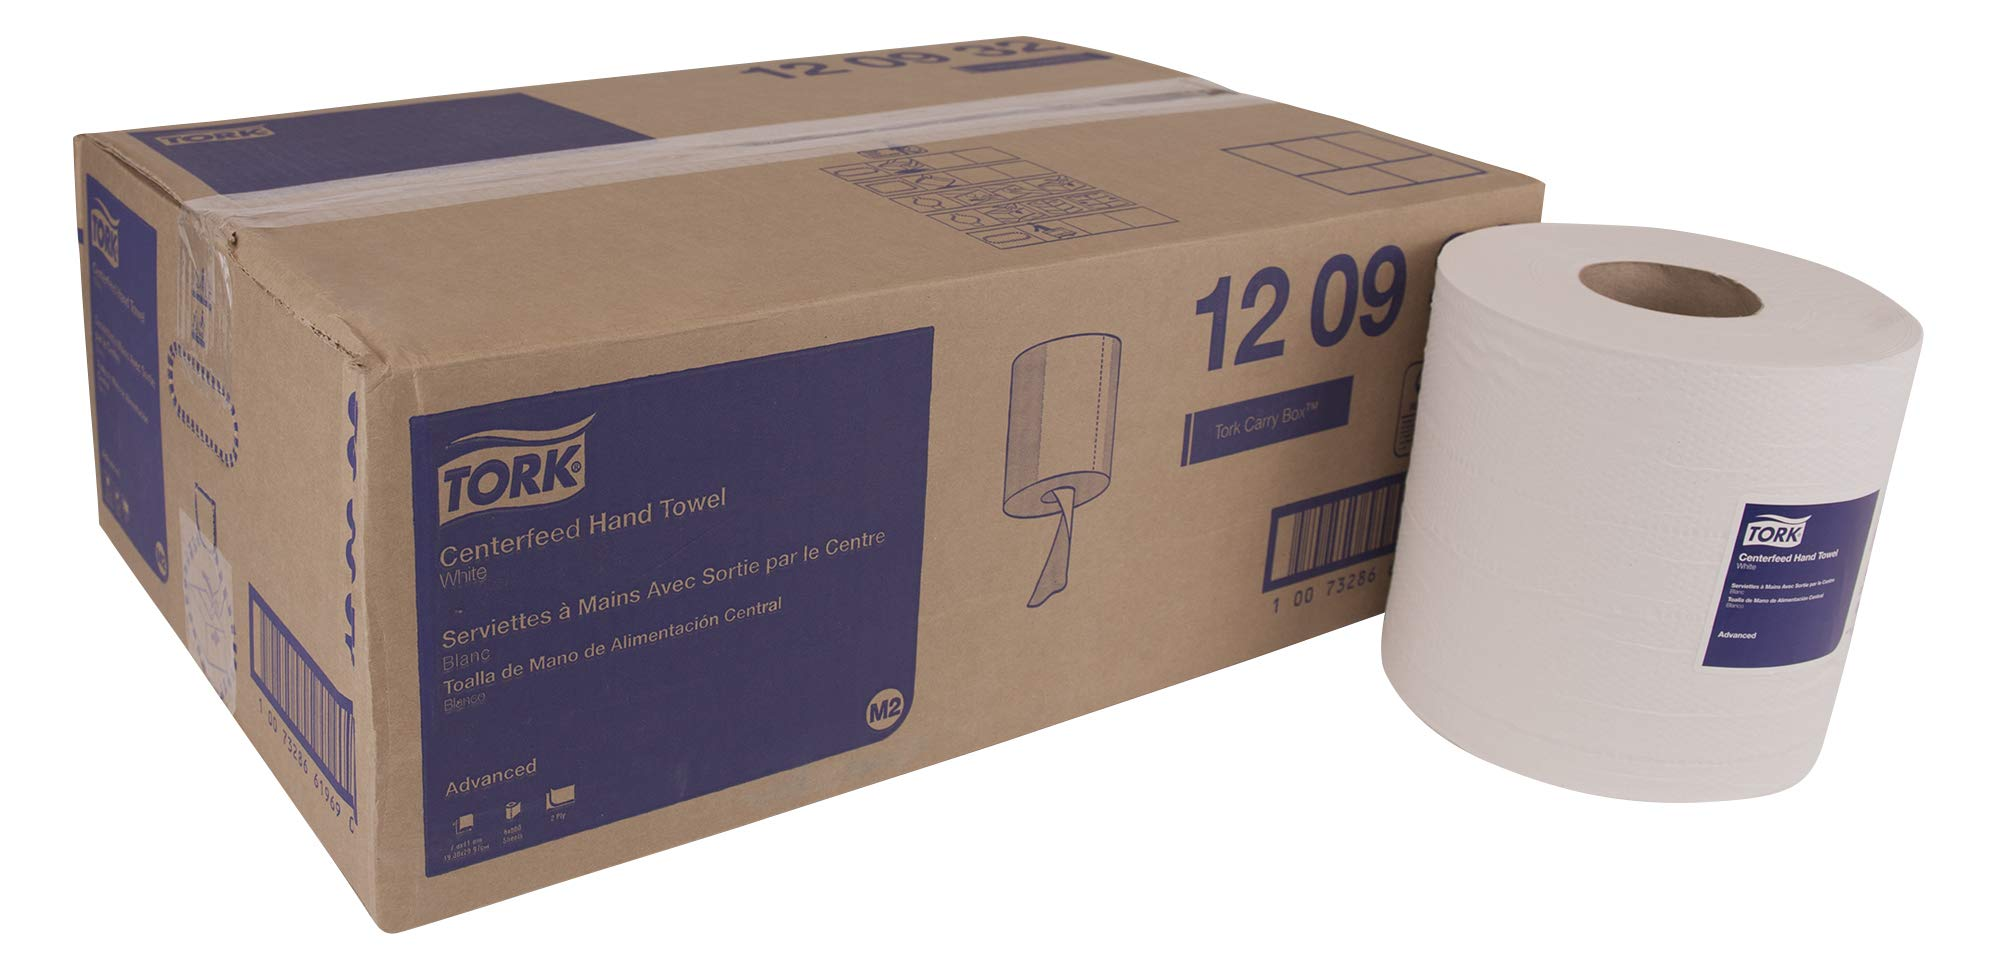 Tork Advanced 120932 Soft Centerfeed Hand Towel, 2-Ply, 7.6'' Width x 11.8'' Length, White (Case of 6 Rolls, 500 per Roll, 3,000 Towels) for use with Tork 559020A or 559028A